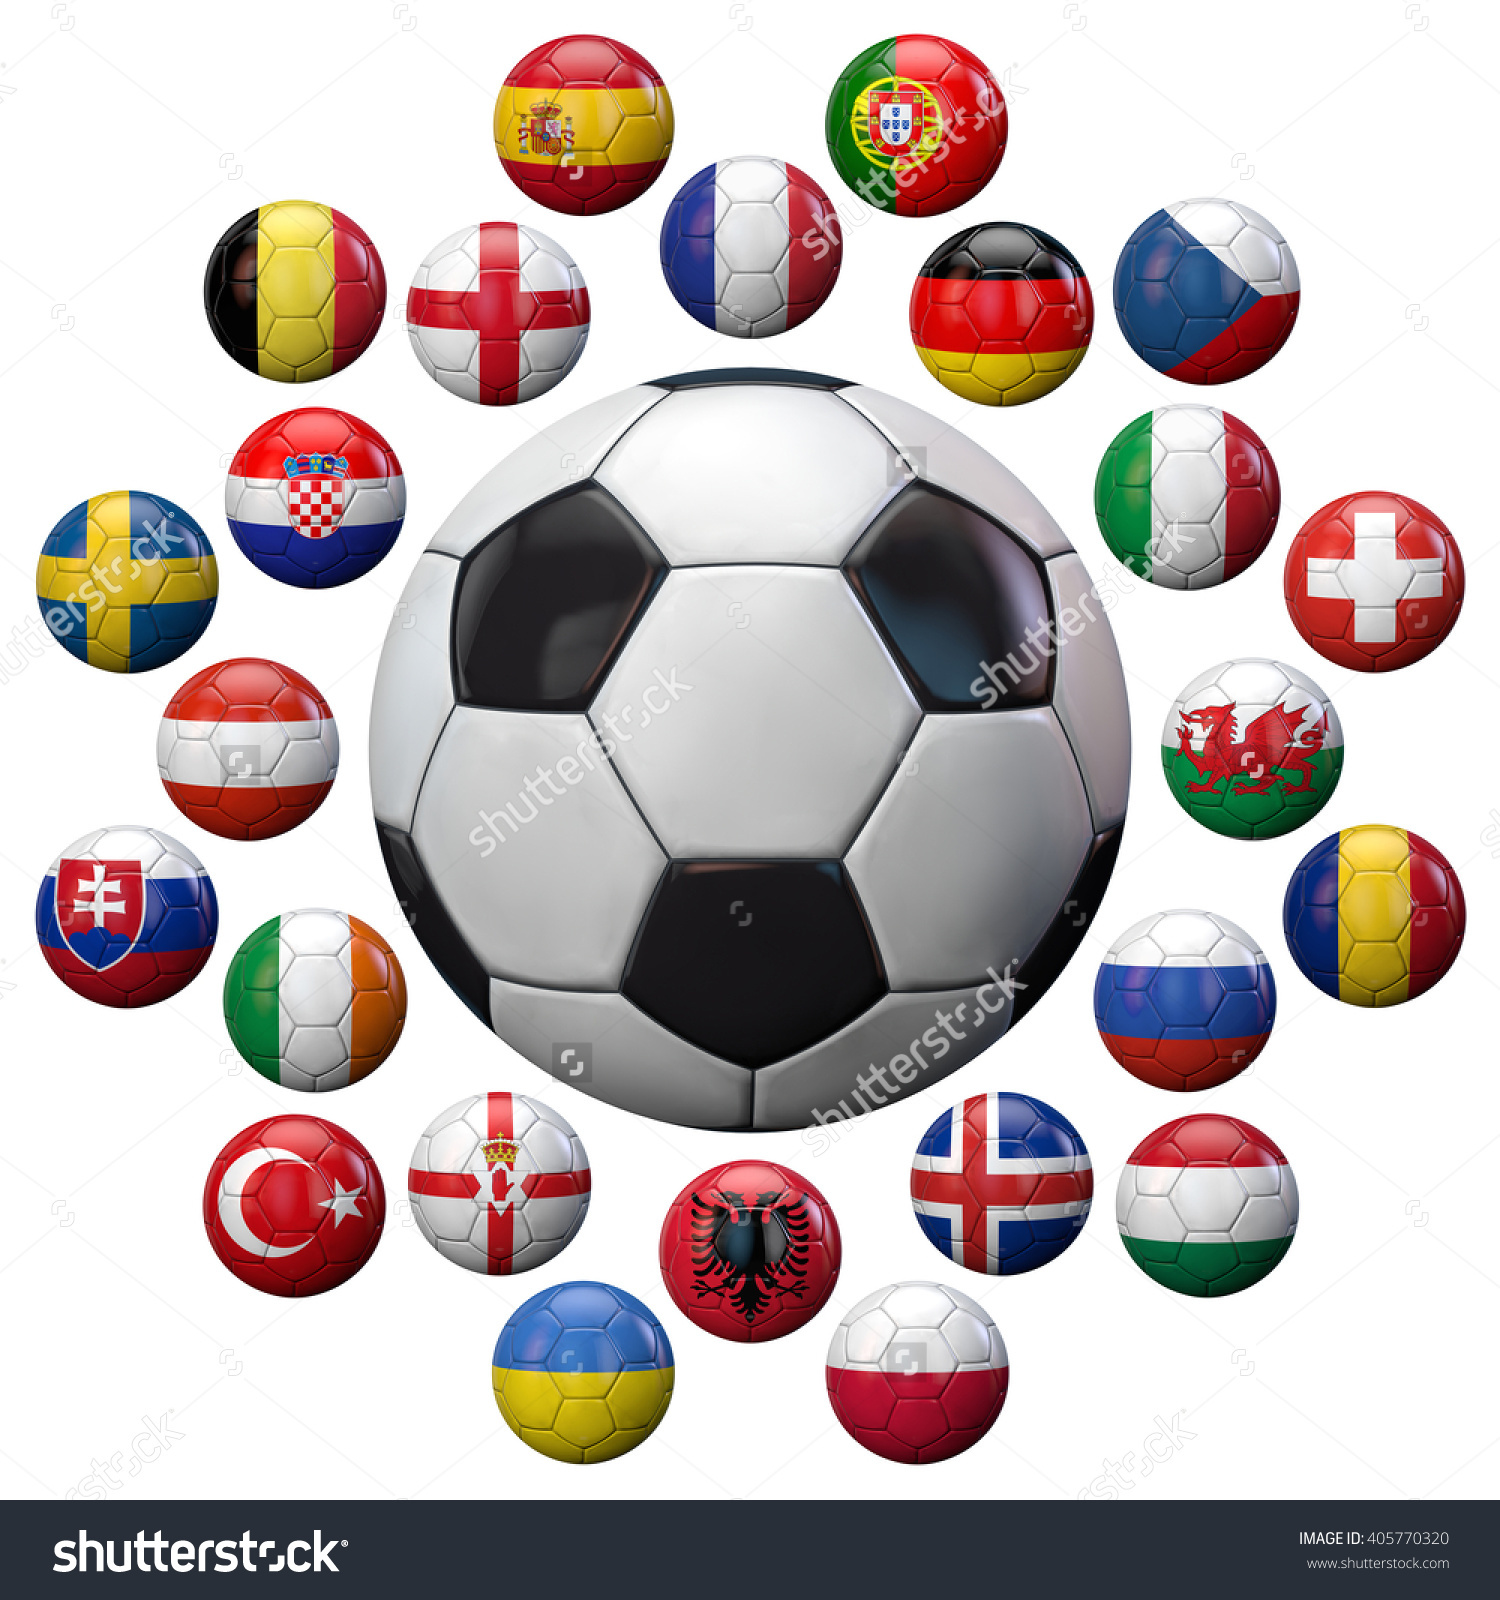 Football 2016 Uefa European Championship Football Stock.